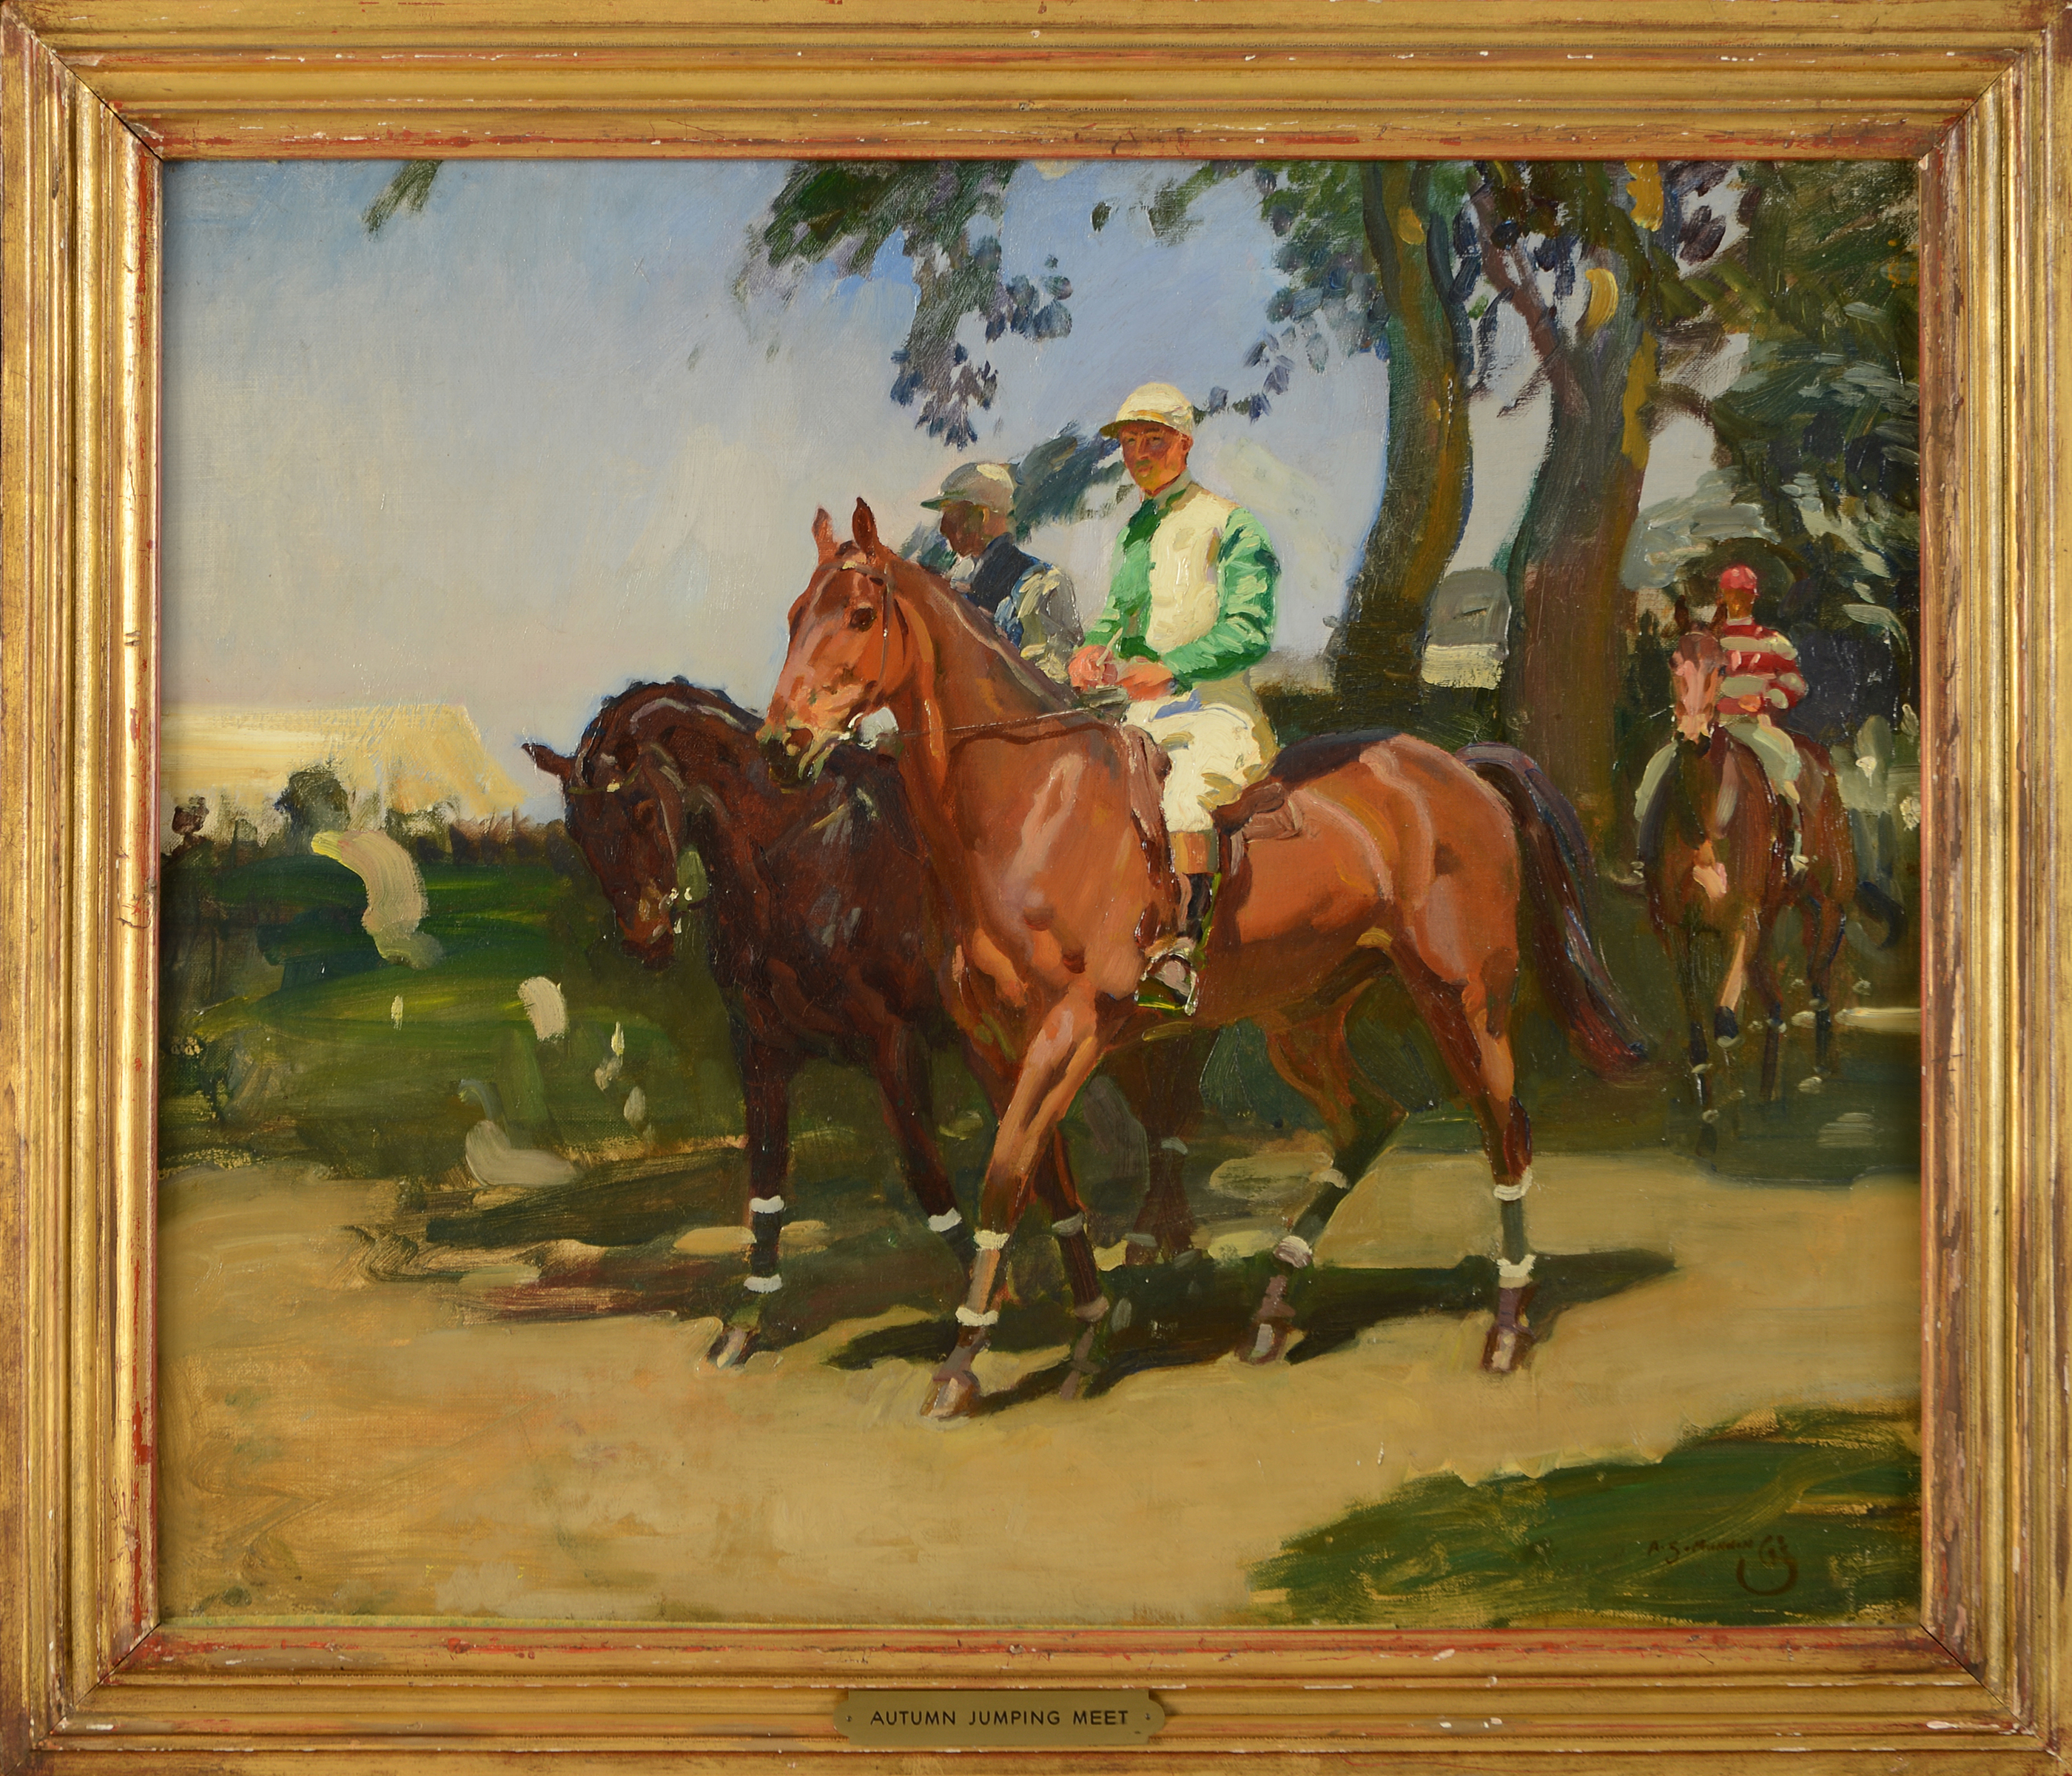 1964.4.1: Autumn Jumping Meet by Sir Alfred J. Munnings (1878-1959), Oil on canvas, Gift: Mrs. Francis P. Garvan